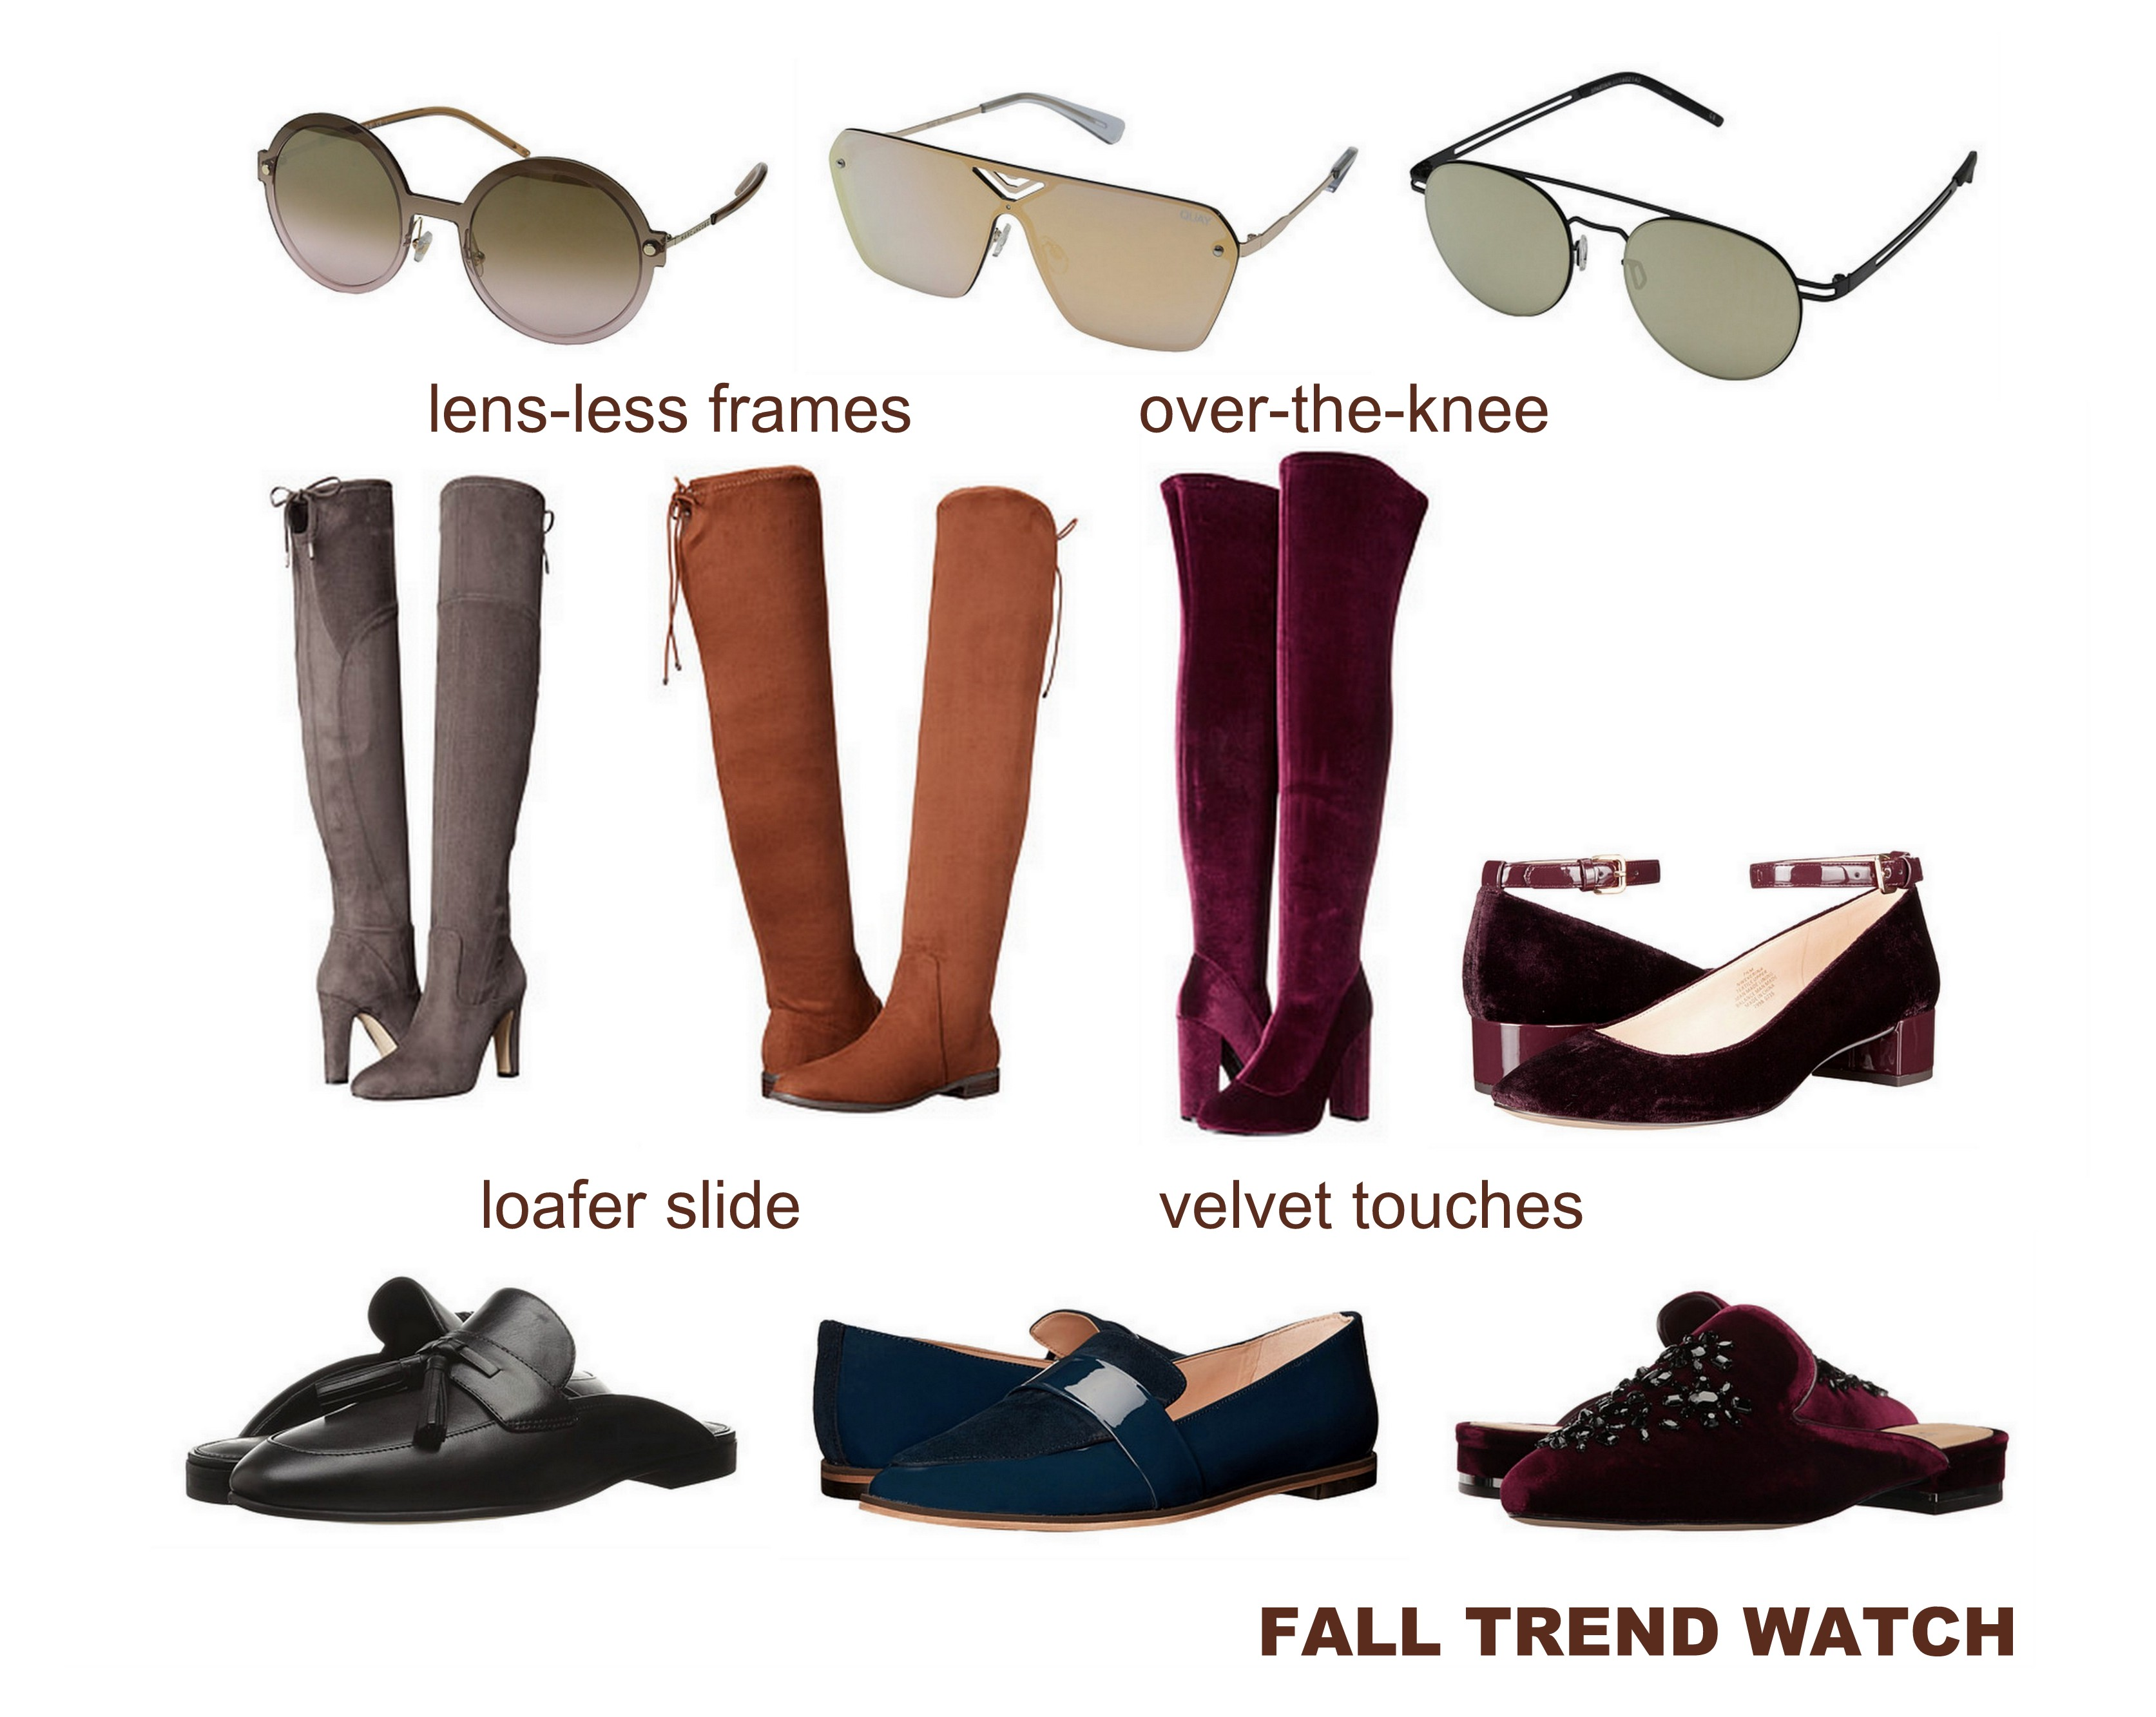 zappos trends